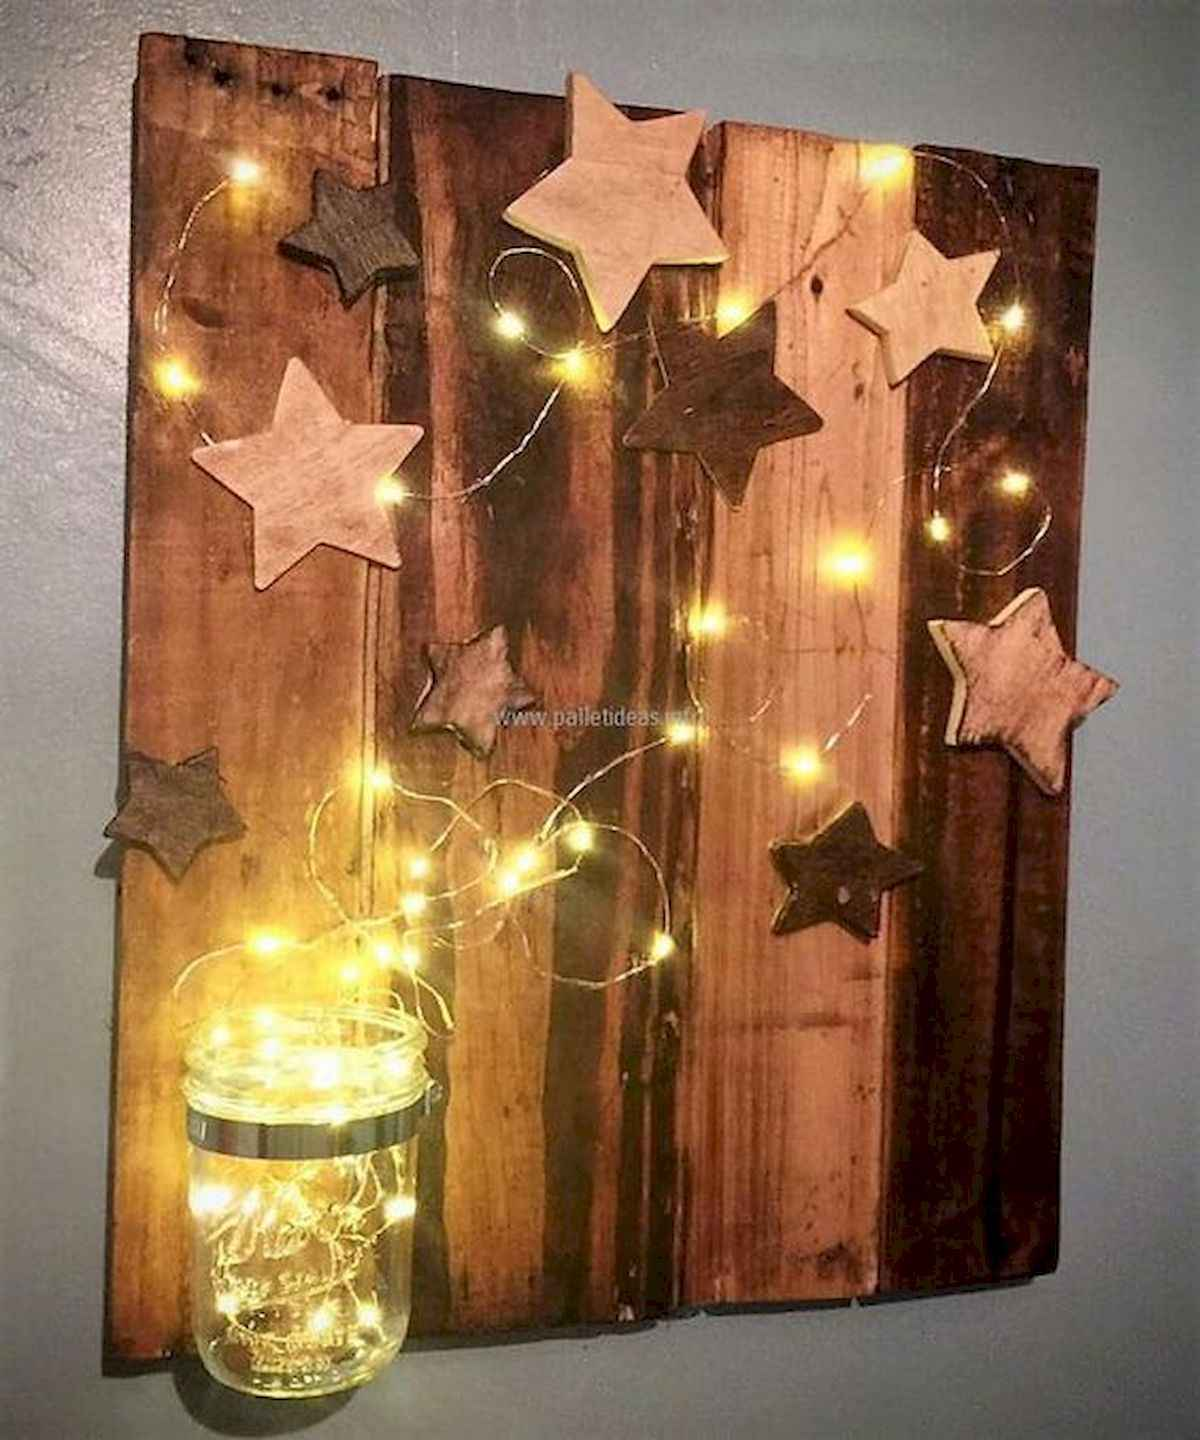 60 awesome wall art christmas ideas decorations (33)